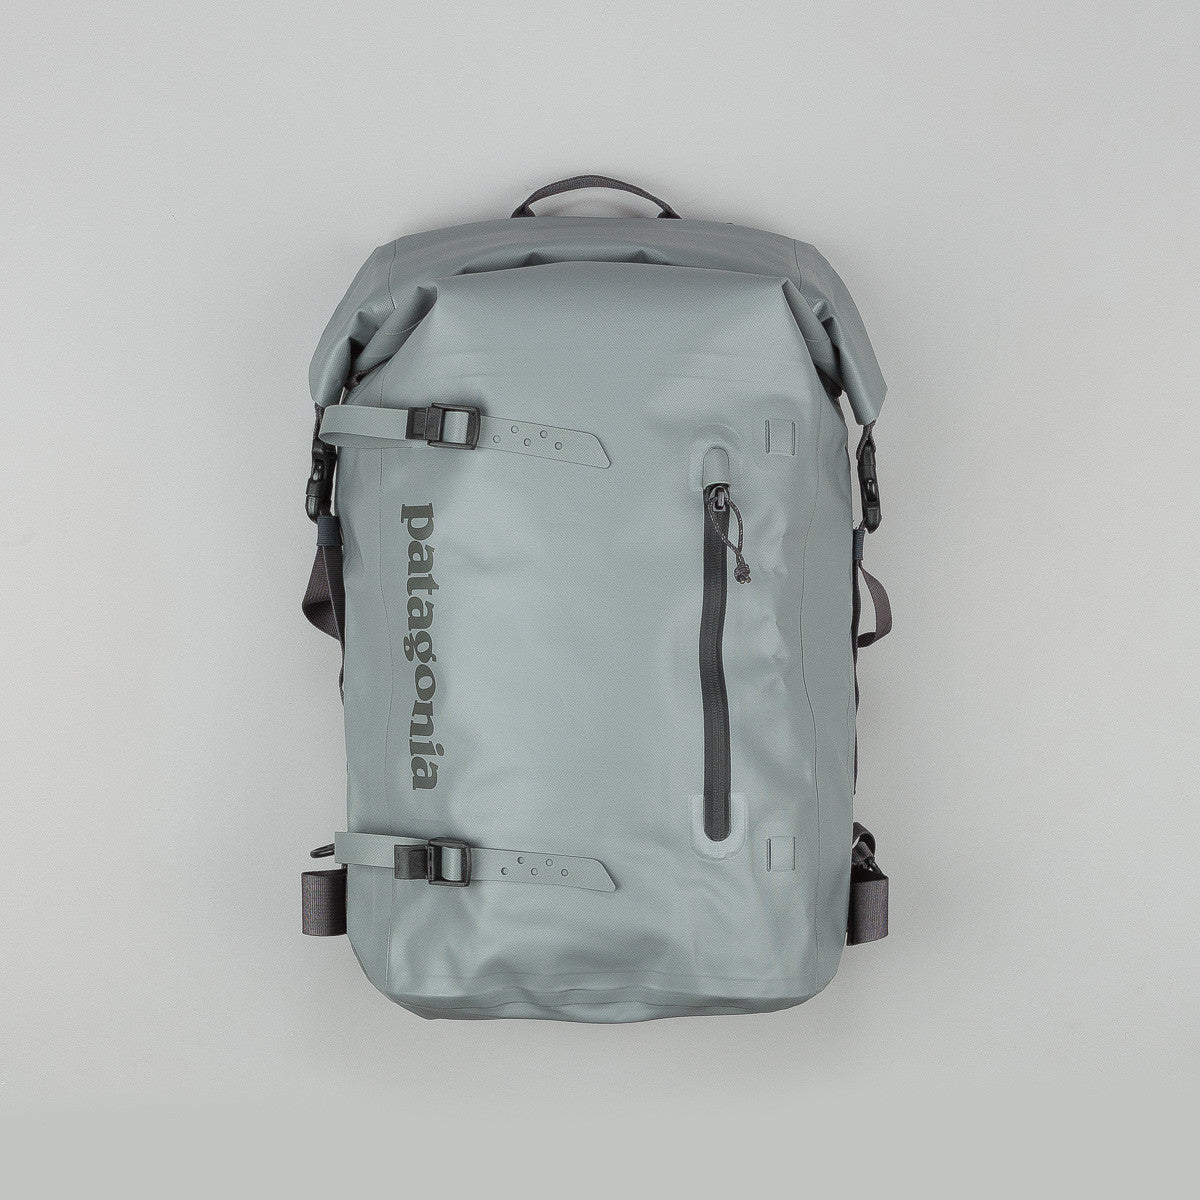 Patagonia Stormfront Waterproof Roll Top Backpack 30L